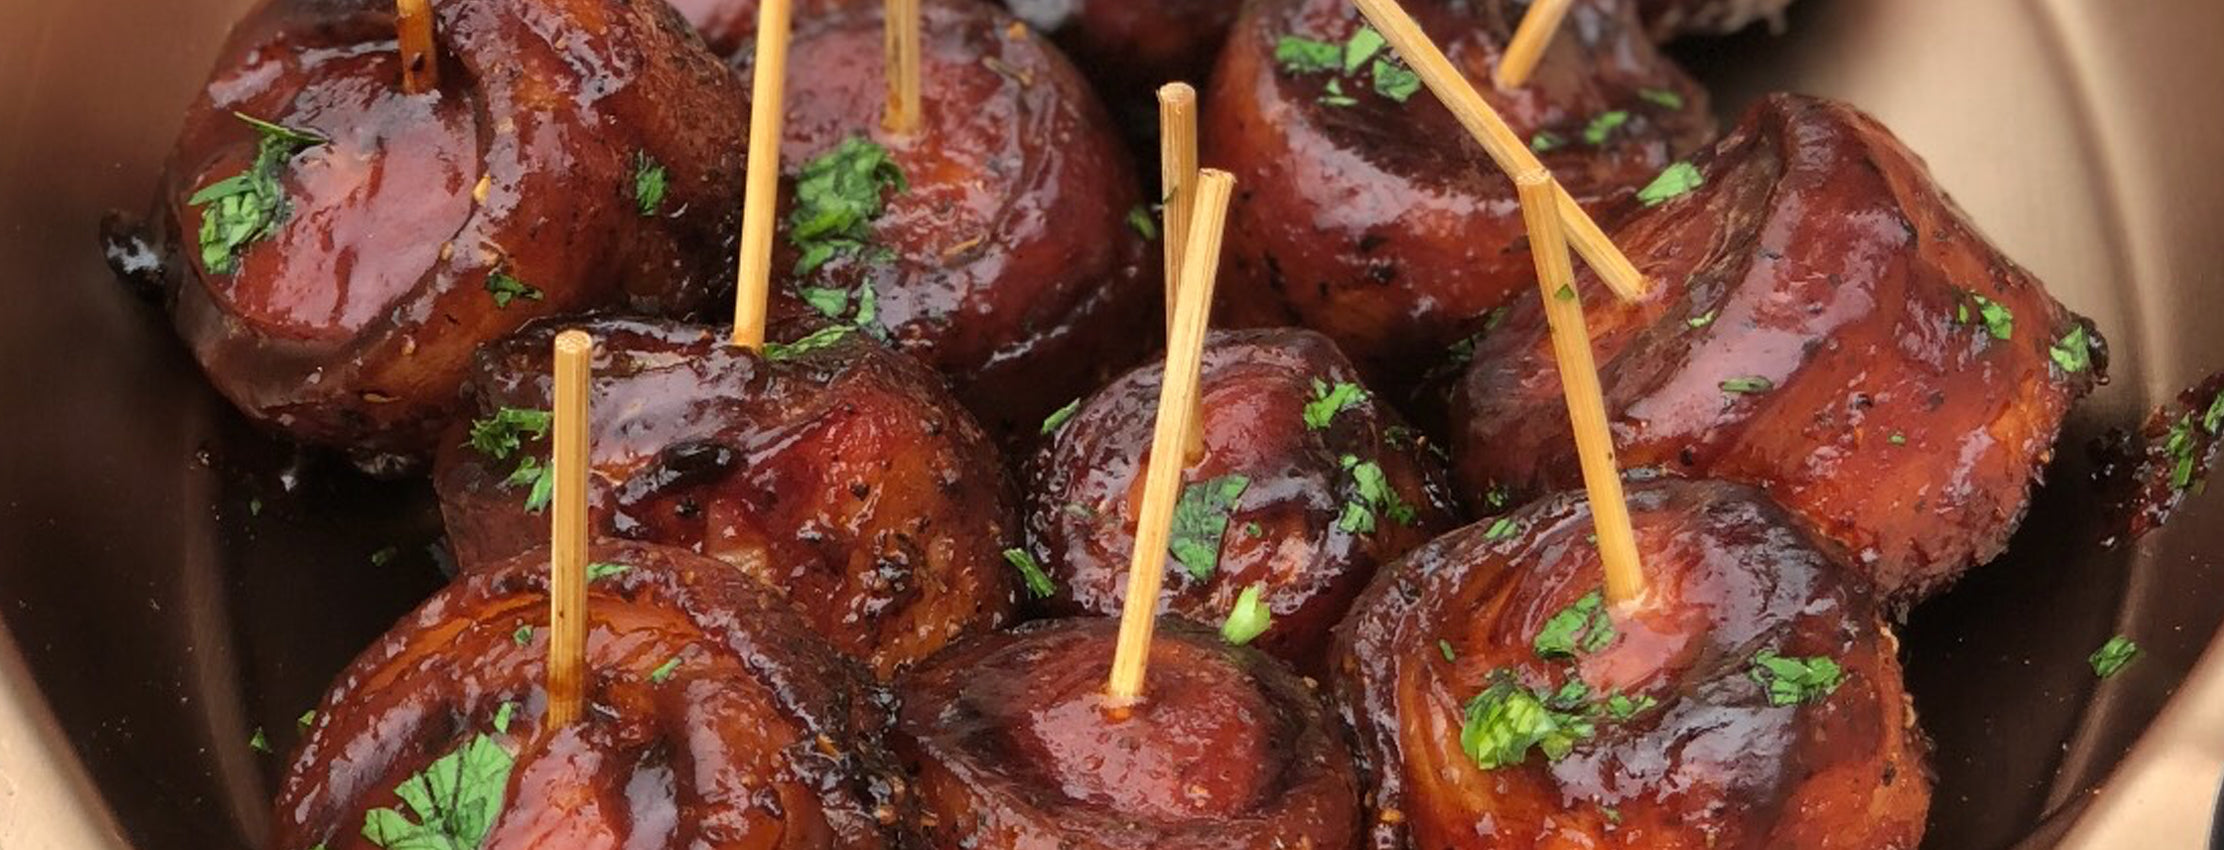 Bacon Wrapped Kielbasa Bites